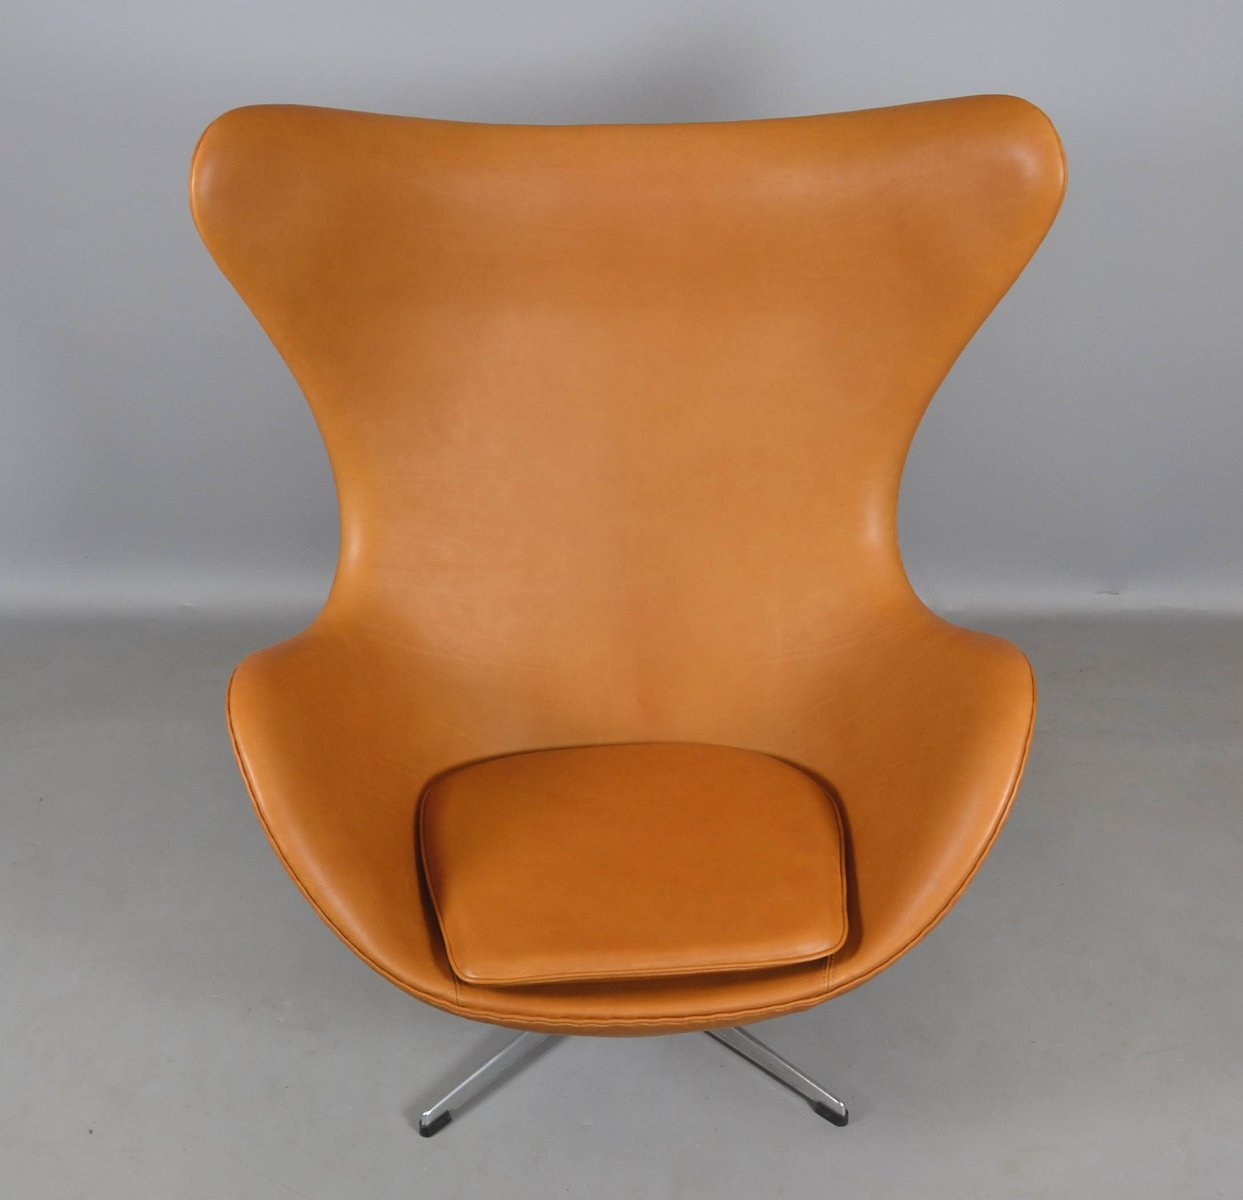 leather egg chair ottoman by arne jacobsen for fritz hansen 1970s for sale at pamono. Black Bedroom Furniture Sets. Home Design Ideas